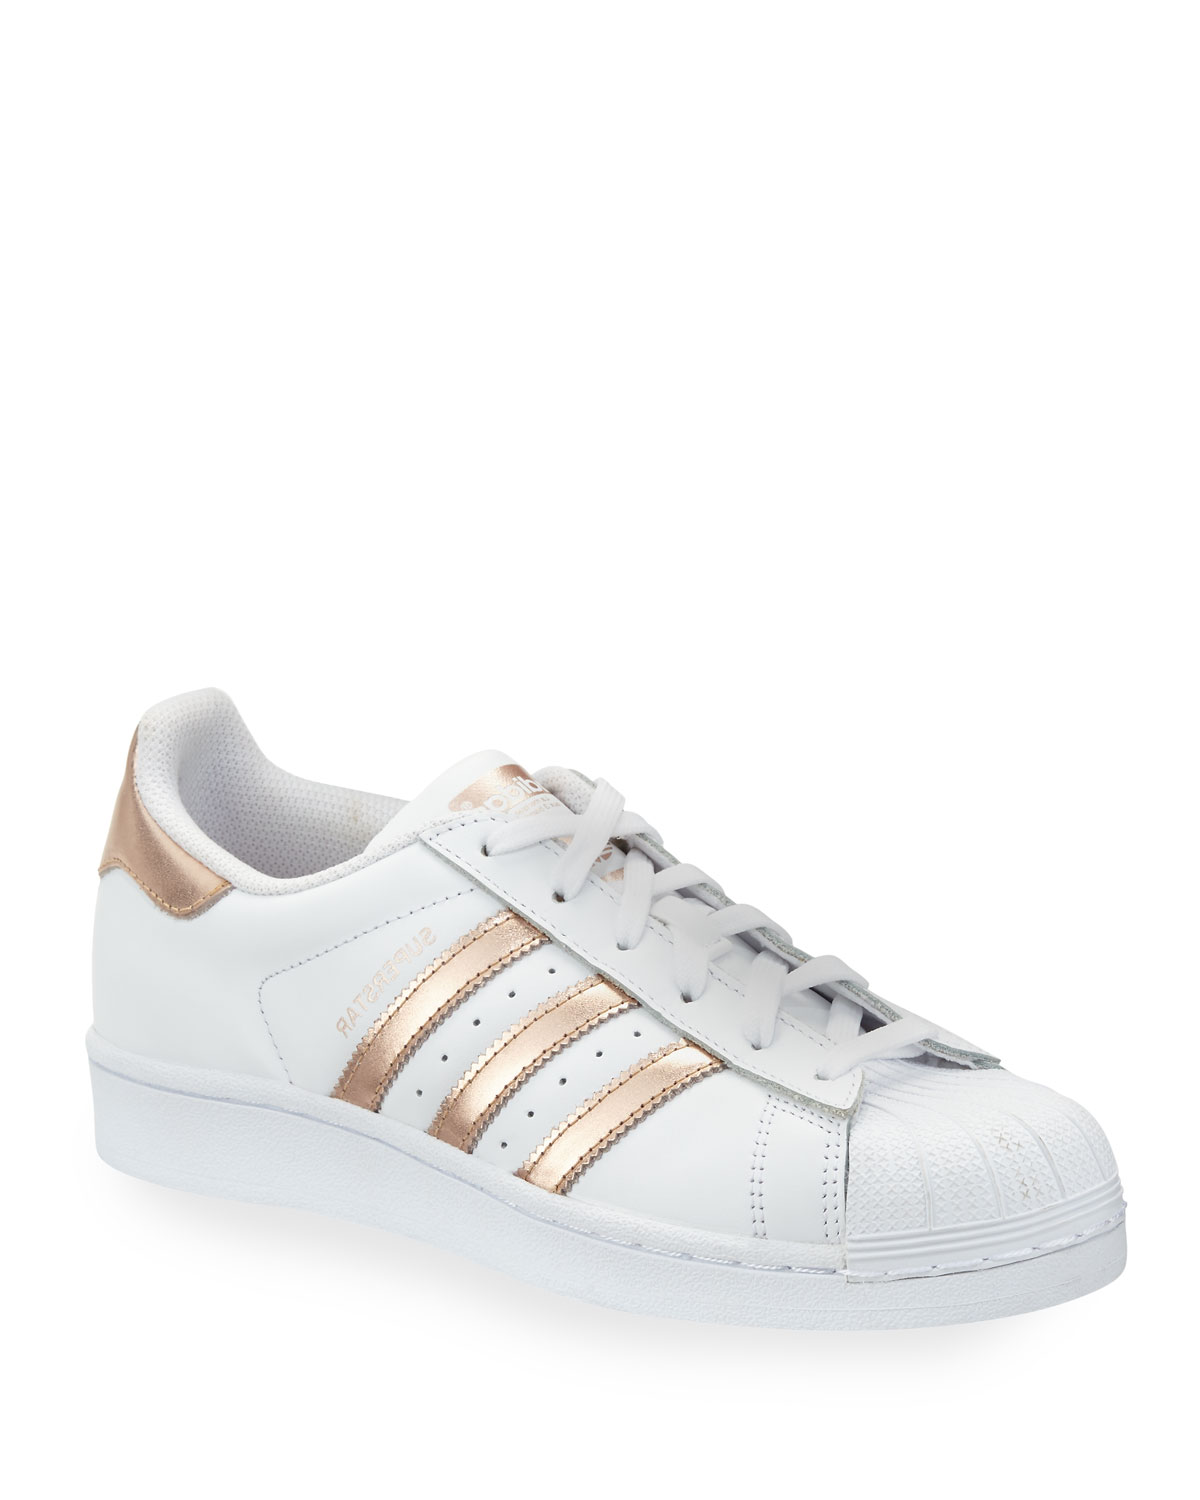 Adidas Superstar Original Fashion Sneakers,